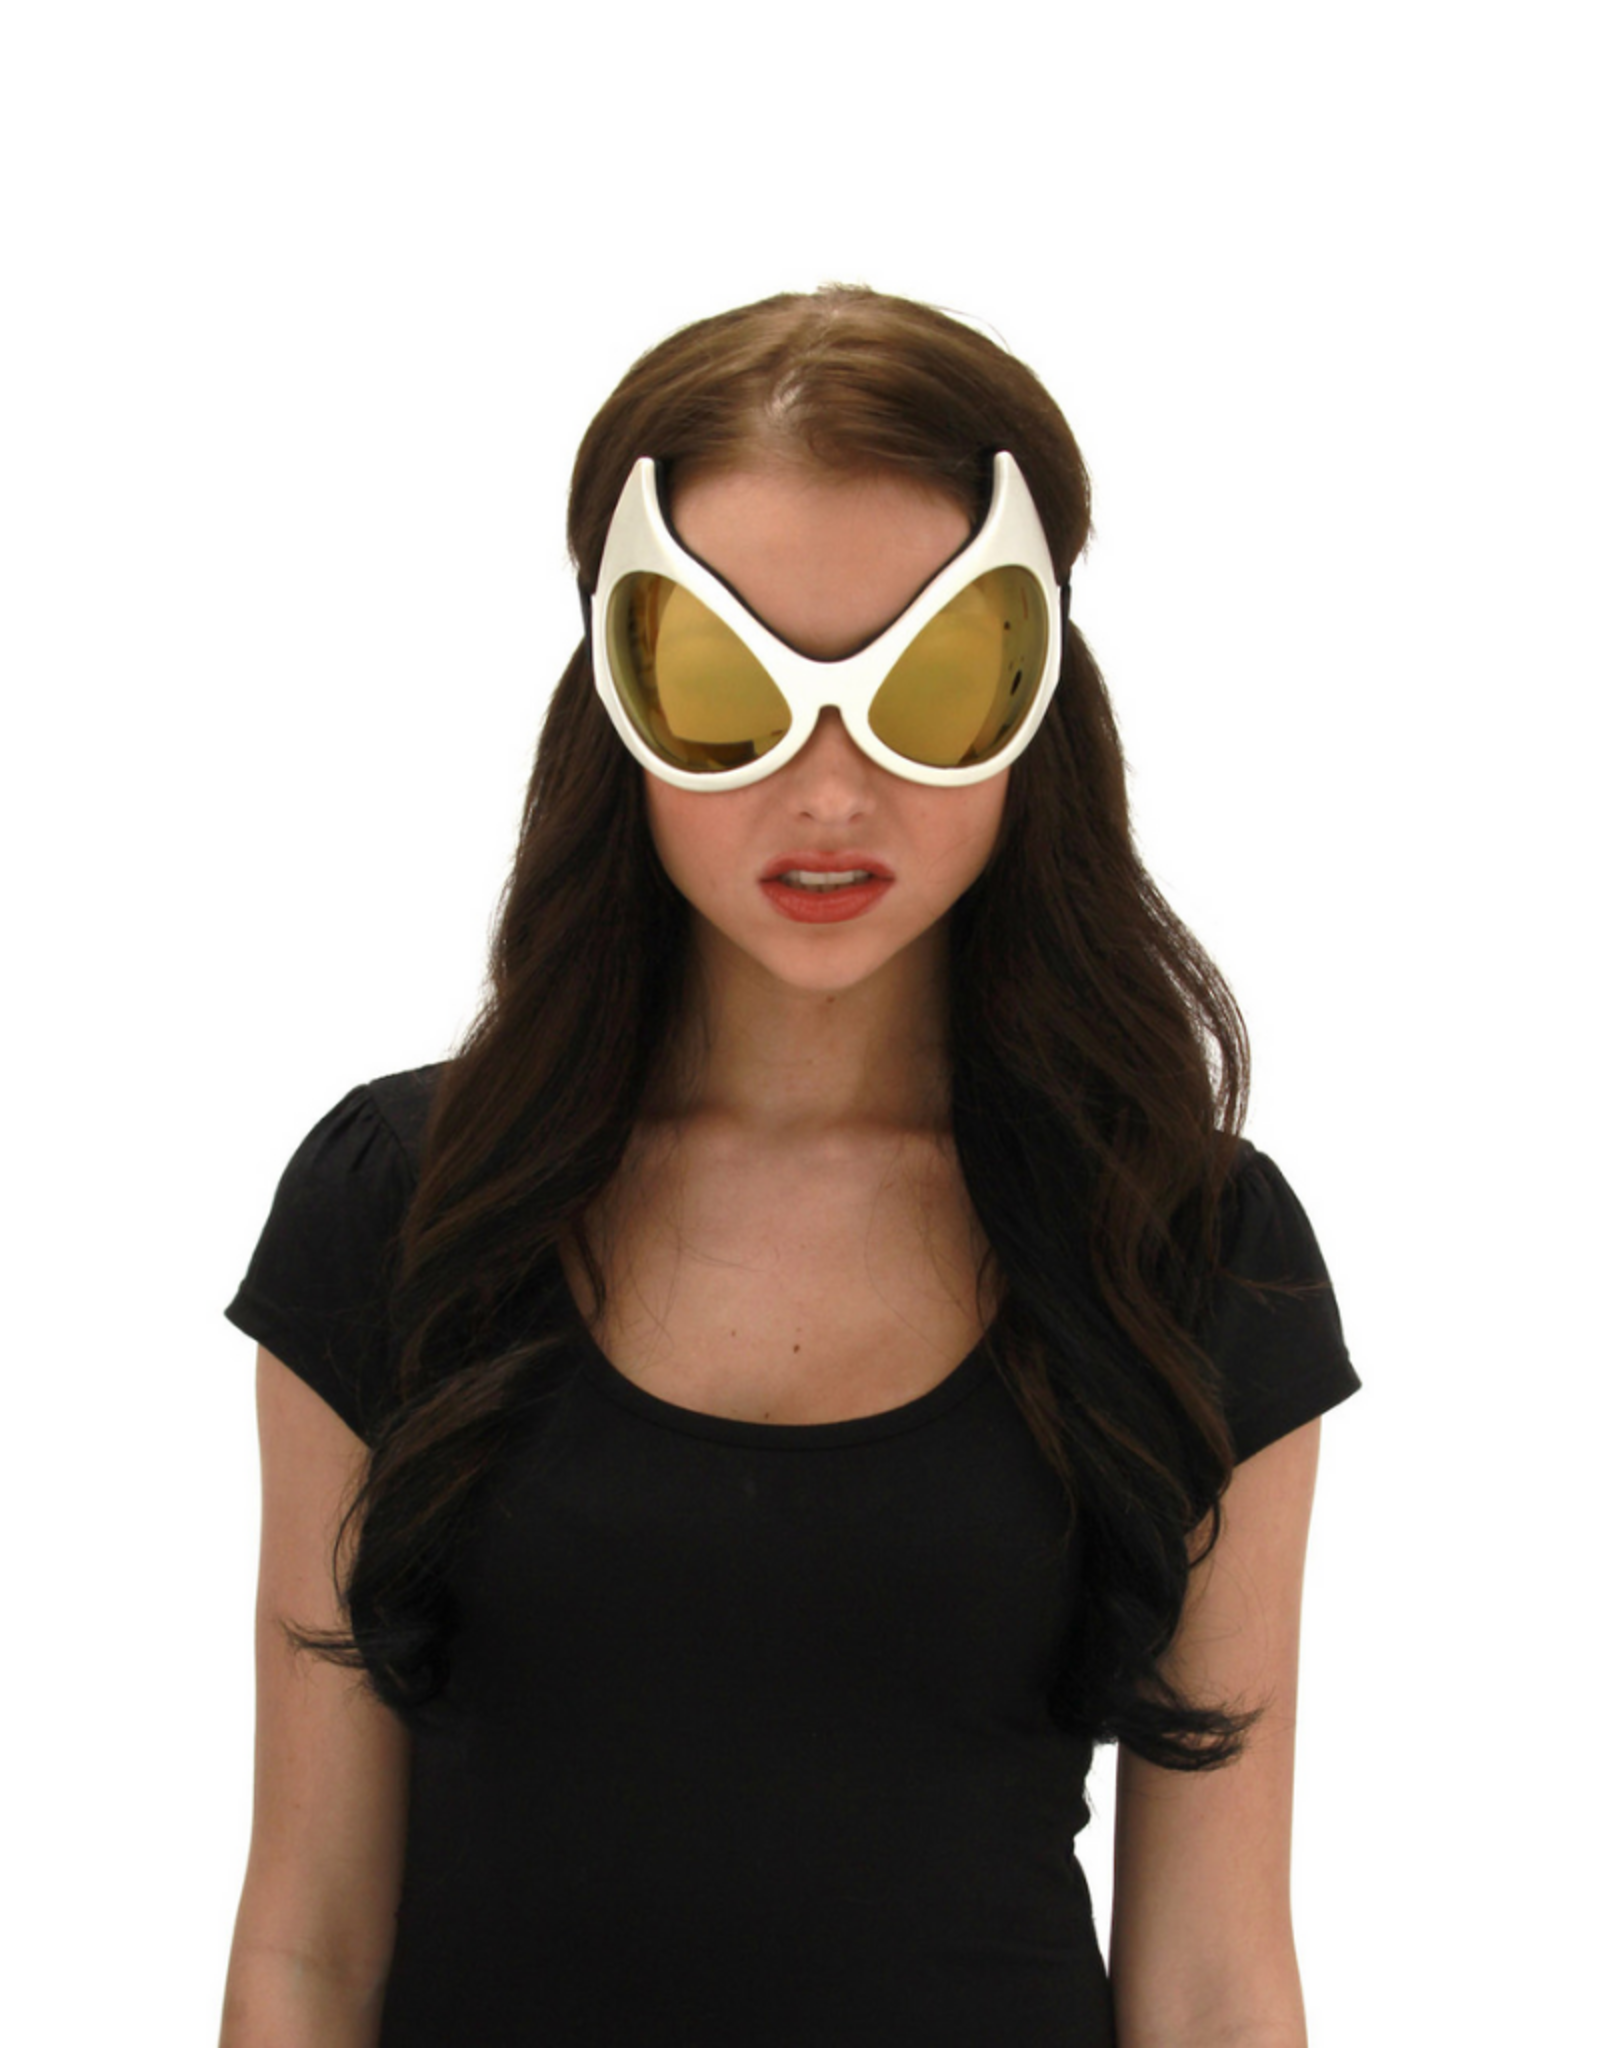 GOGGLES-CATEYE, WHITE/GOLD LENS